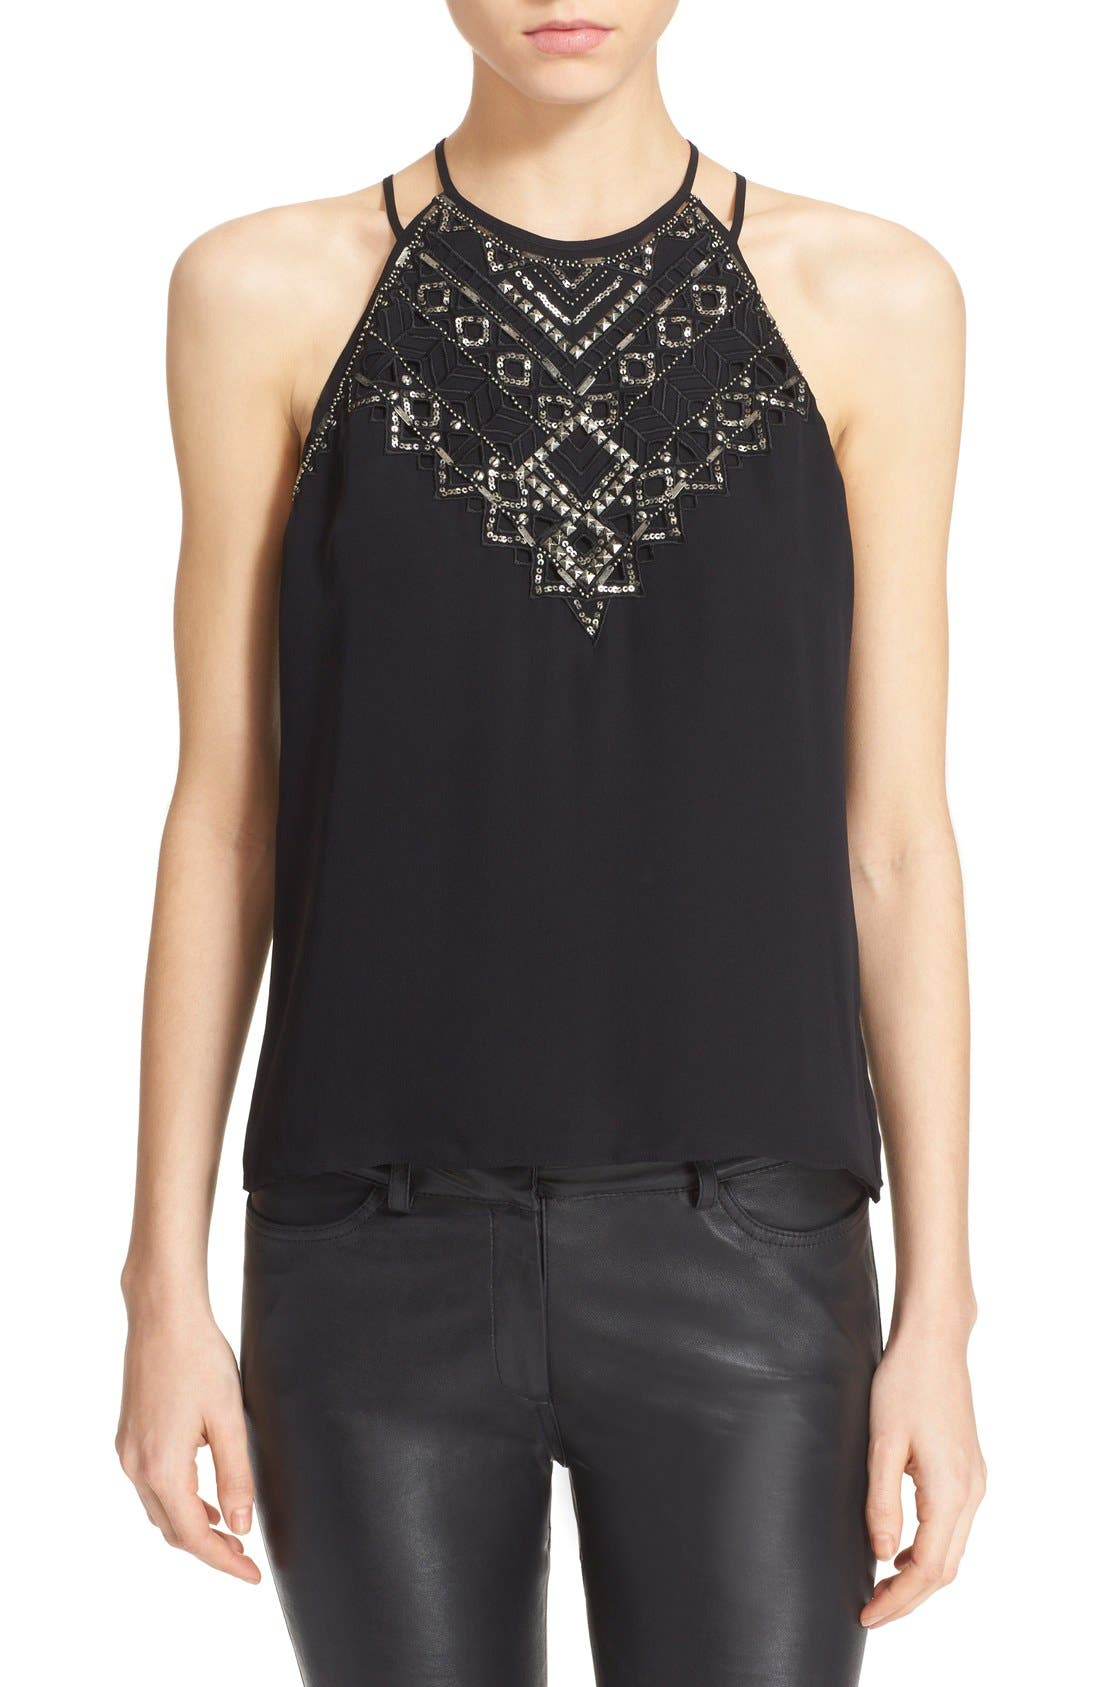 Alternate Image 1 Selected - Parker 'Neil' Embellished Strappy Racerback Tank